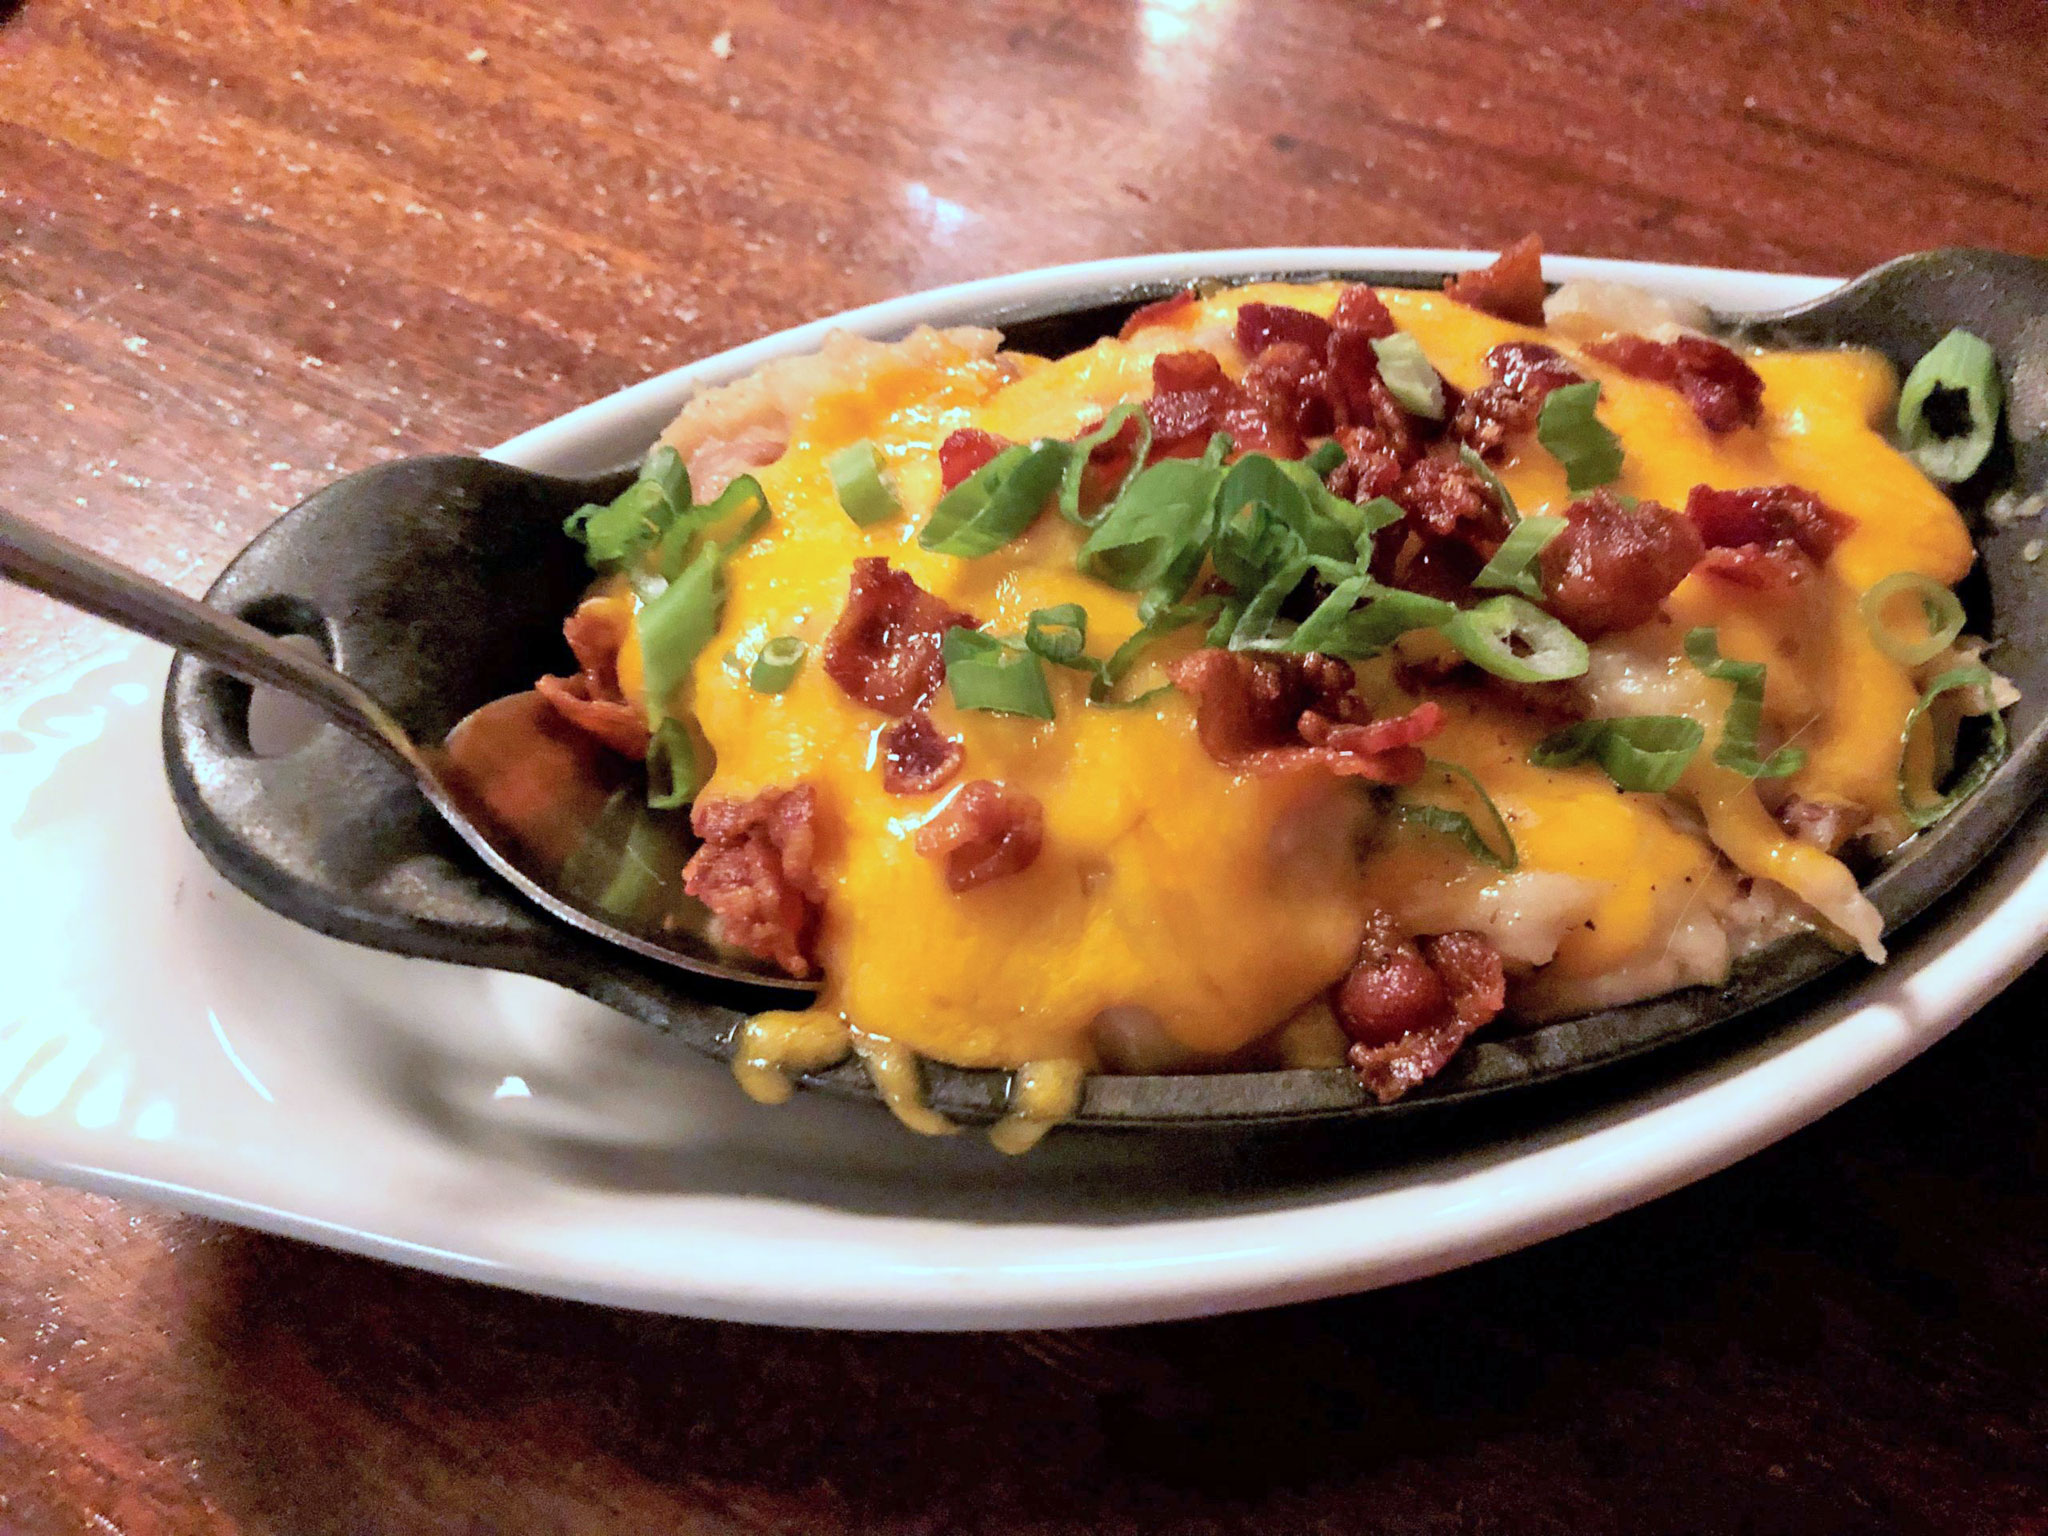 Loaded Mashed Potatoes